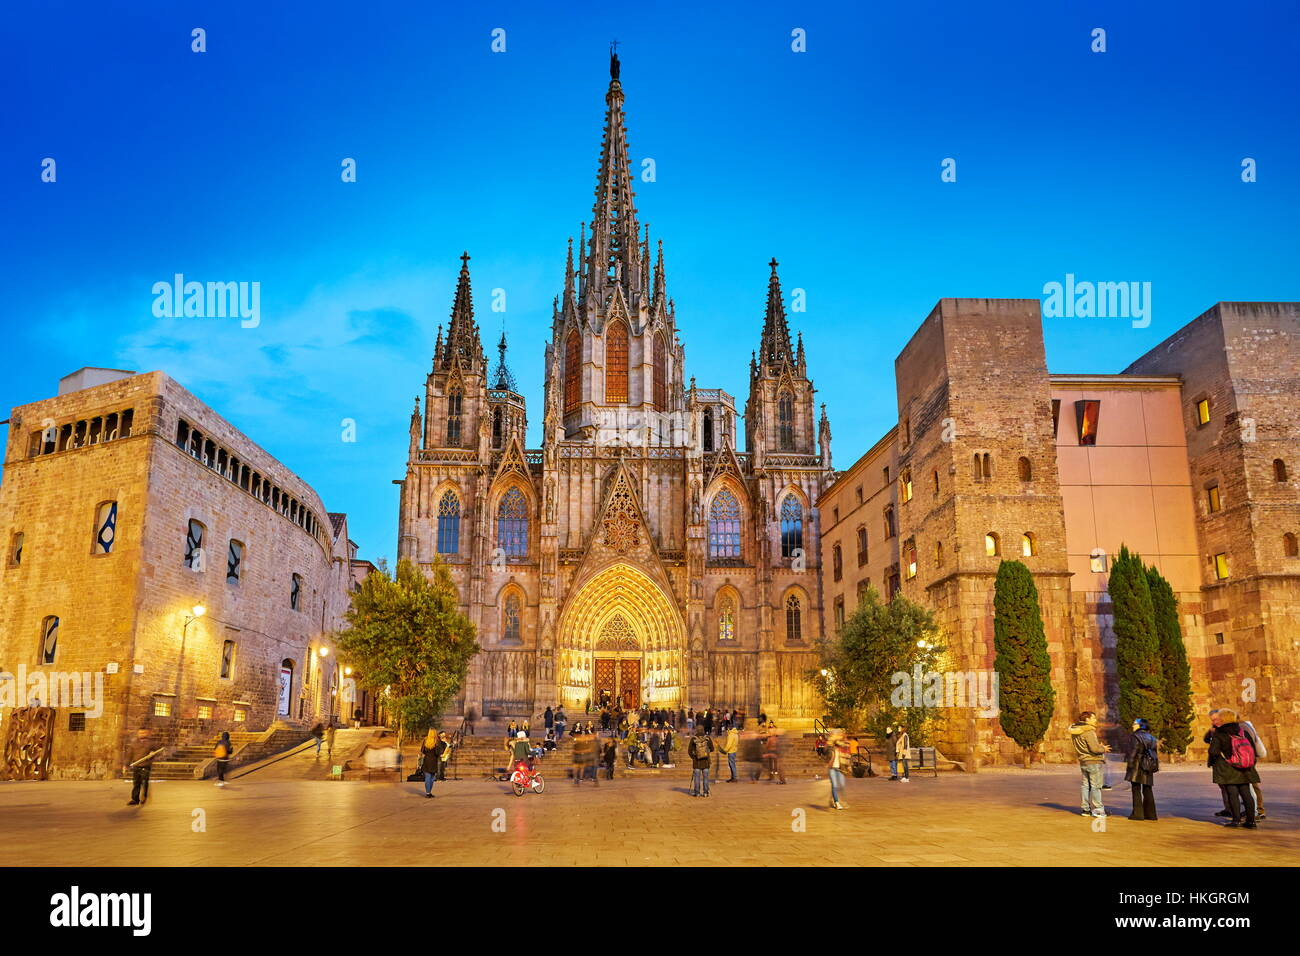 Barcelona Cathedral at evening, Barri Ghotic Quarter, Catalonia, Spain - Stock Image